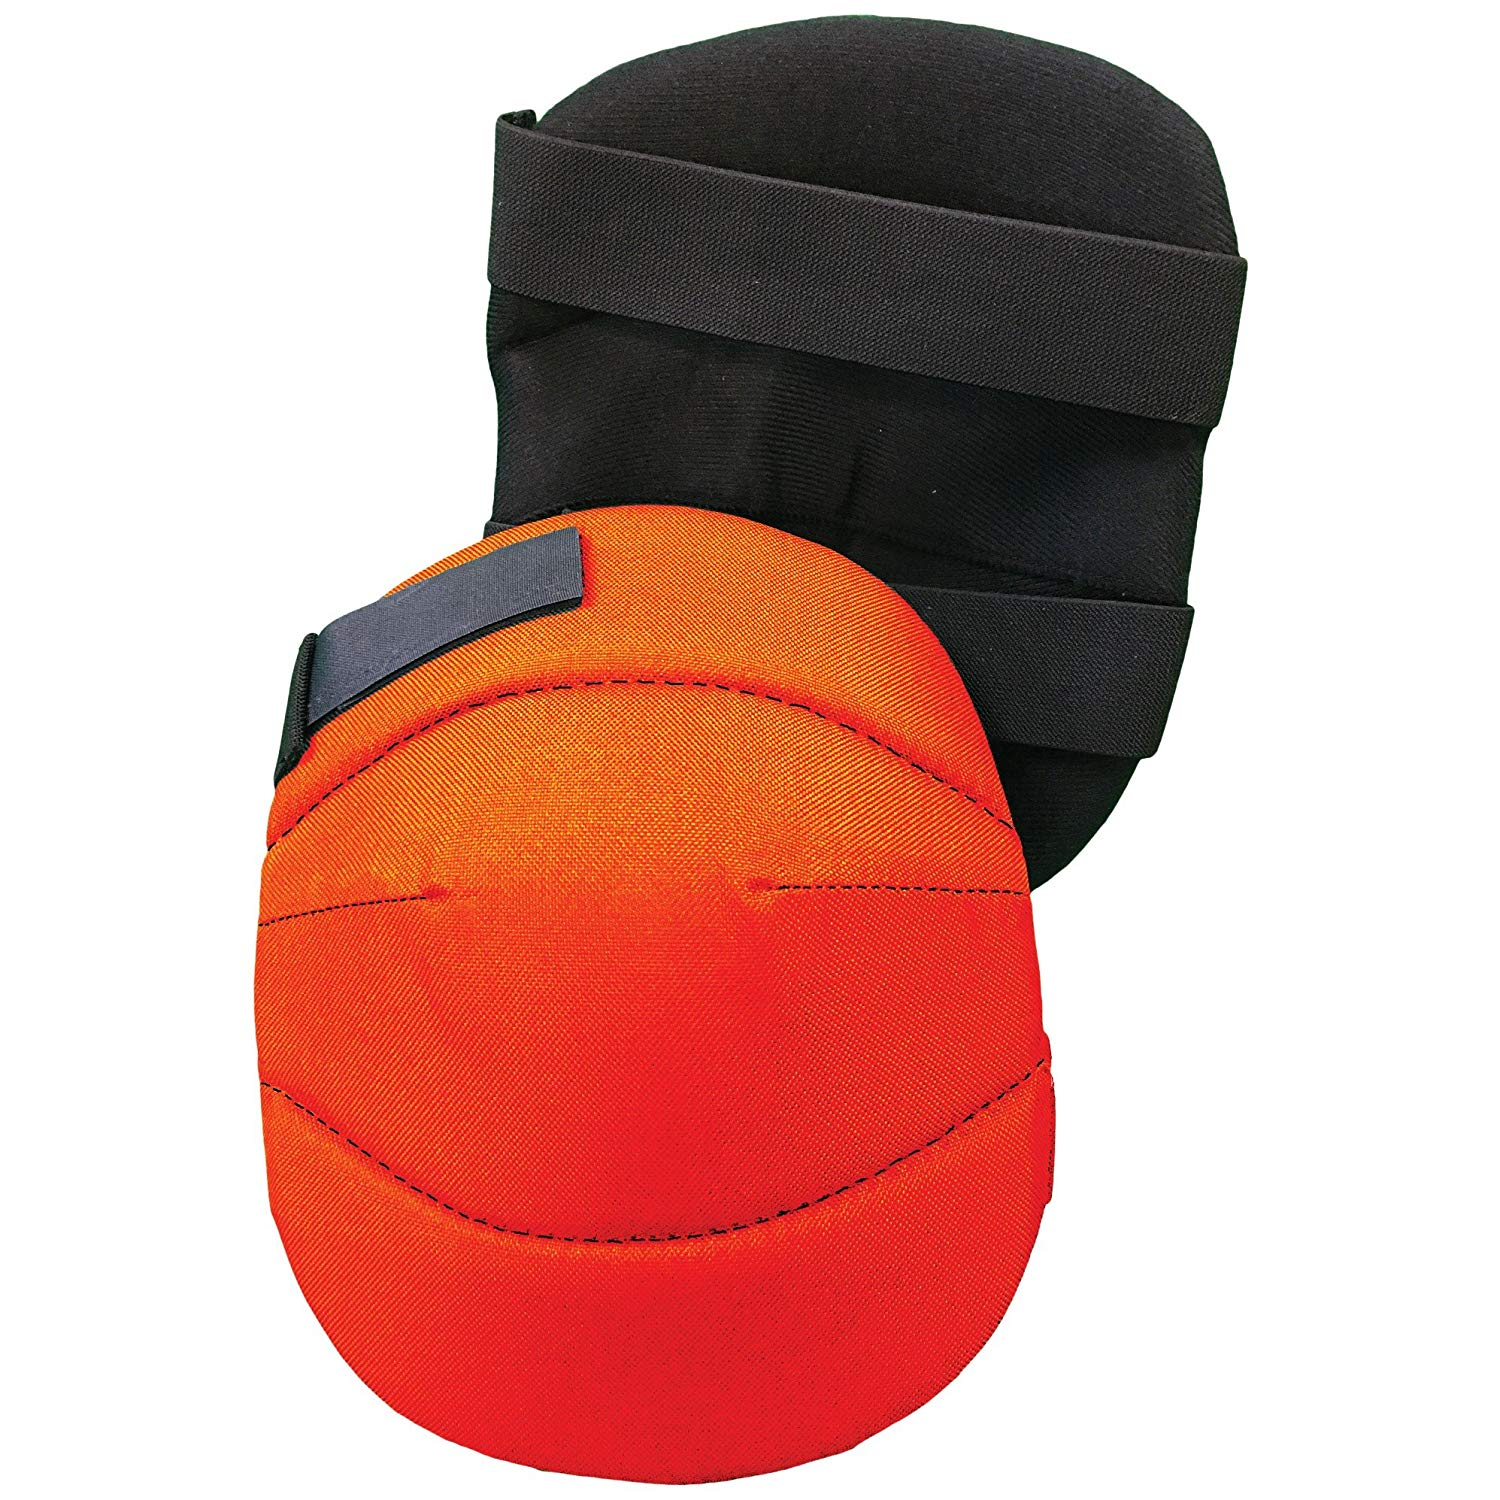 Brite Safety Lightweight Knee Pads with EVA Foam Body, Hook & Loop Straps, Ideal for kneeling on delicate flooring or gardening (Soft Knee Cap)